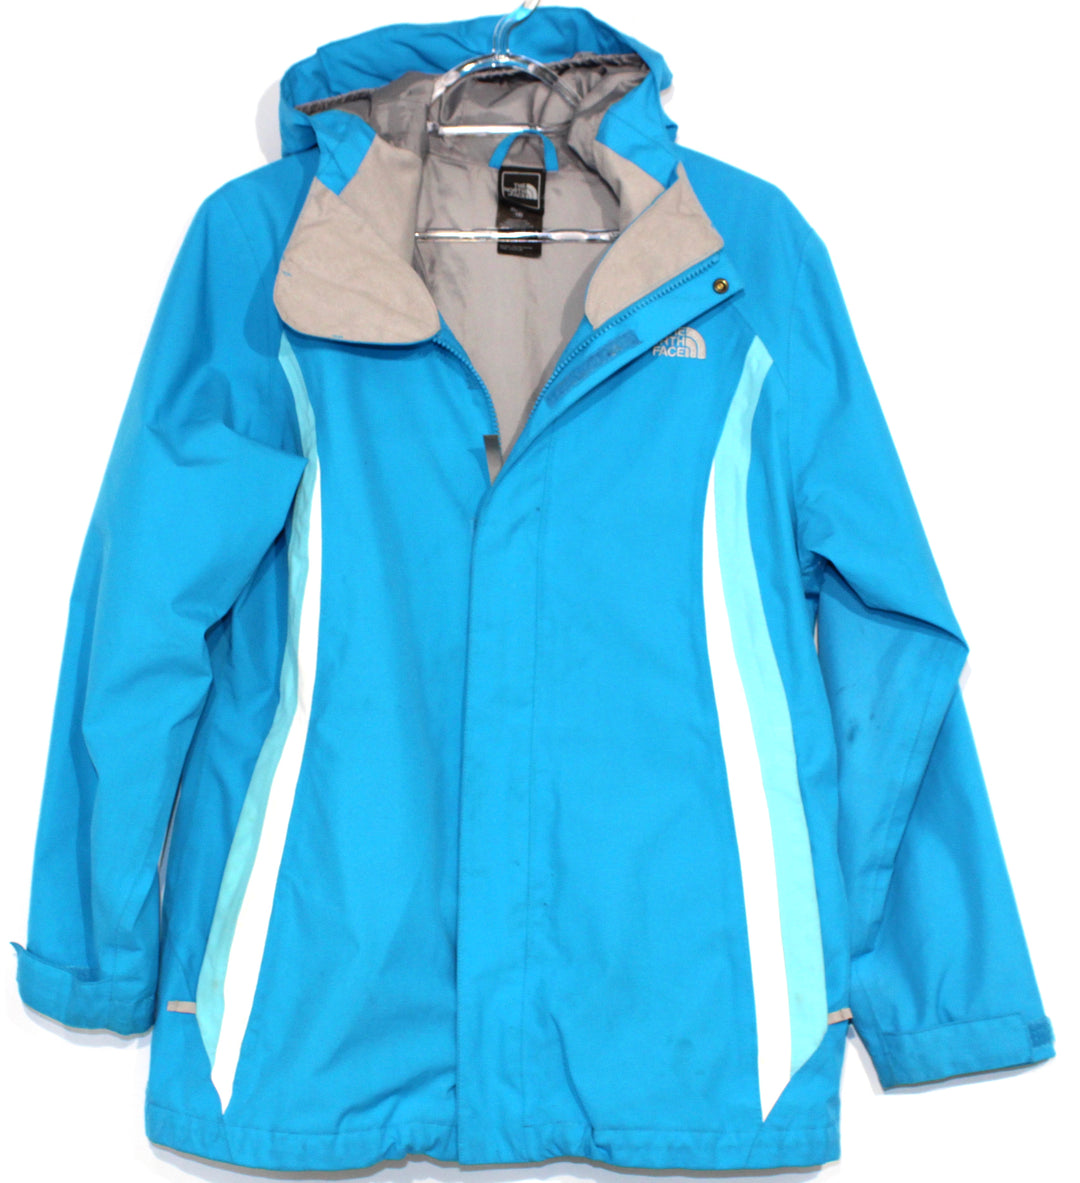 Primary Photo - BRAND: NORTHFACE <BR>STYLE: JACKET OUTDOOR <BR>COLOR: TURQUOISE <BR>SIZE: S (XL GIRLS)<BR>OTHER INFO: GIRLS SIZE AS IS!!! <BR>SKU: 262-26211-135248<BR><BR>GENTLE WEAR AS IS <BR>DESIGNER FINAL